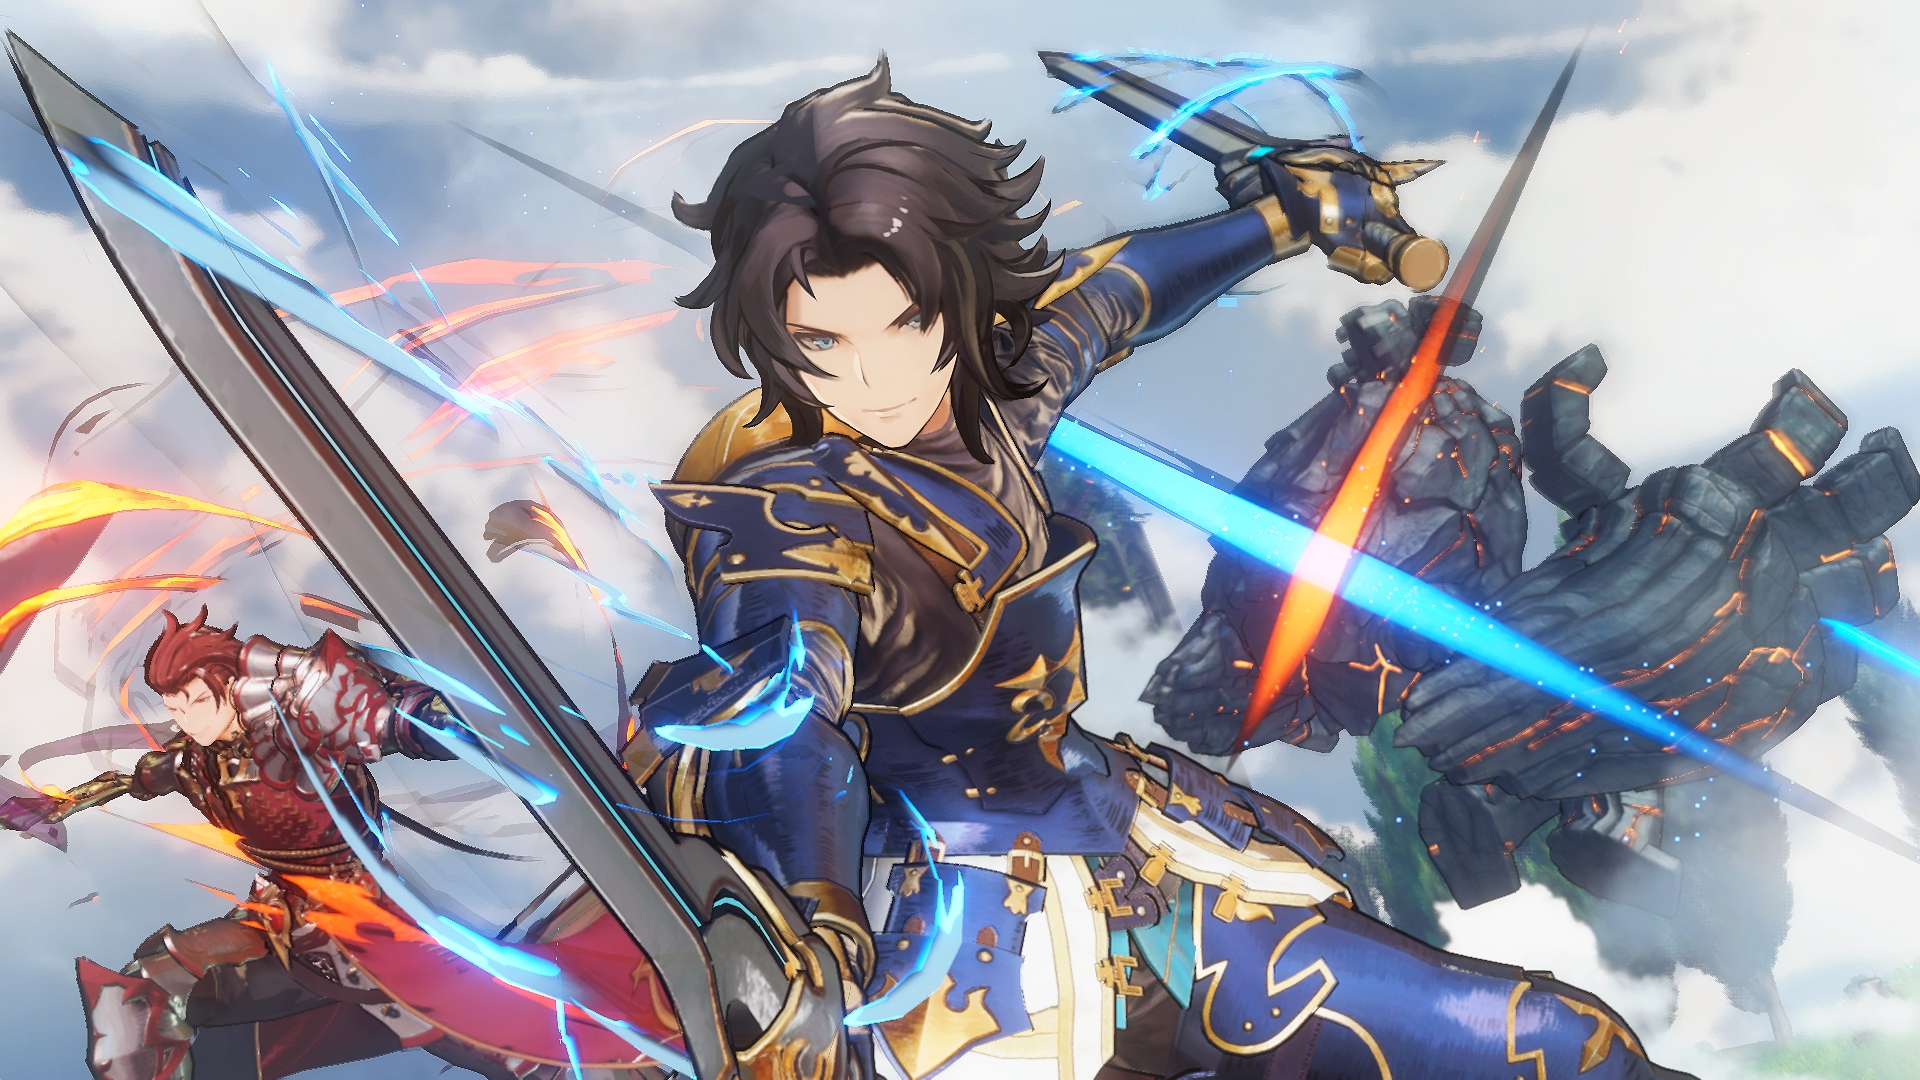 granblue fantasy versus game hd wallpaper 69706